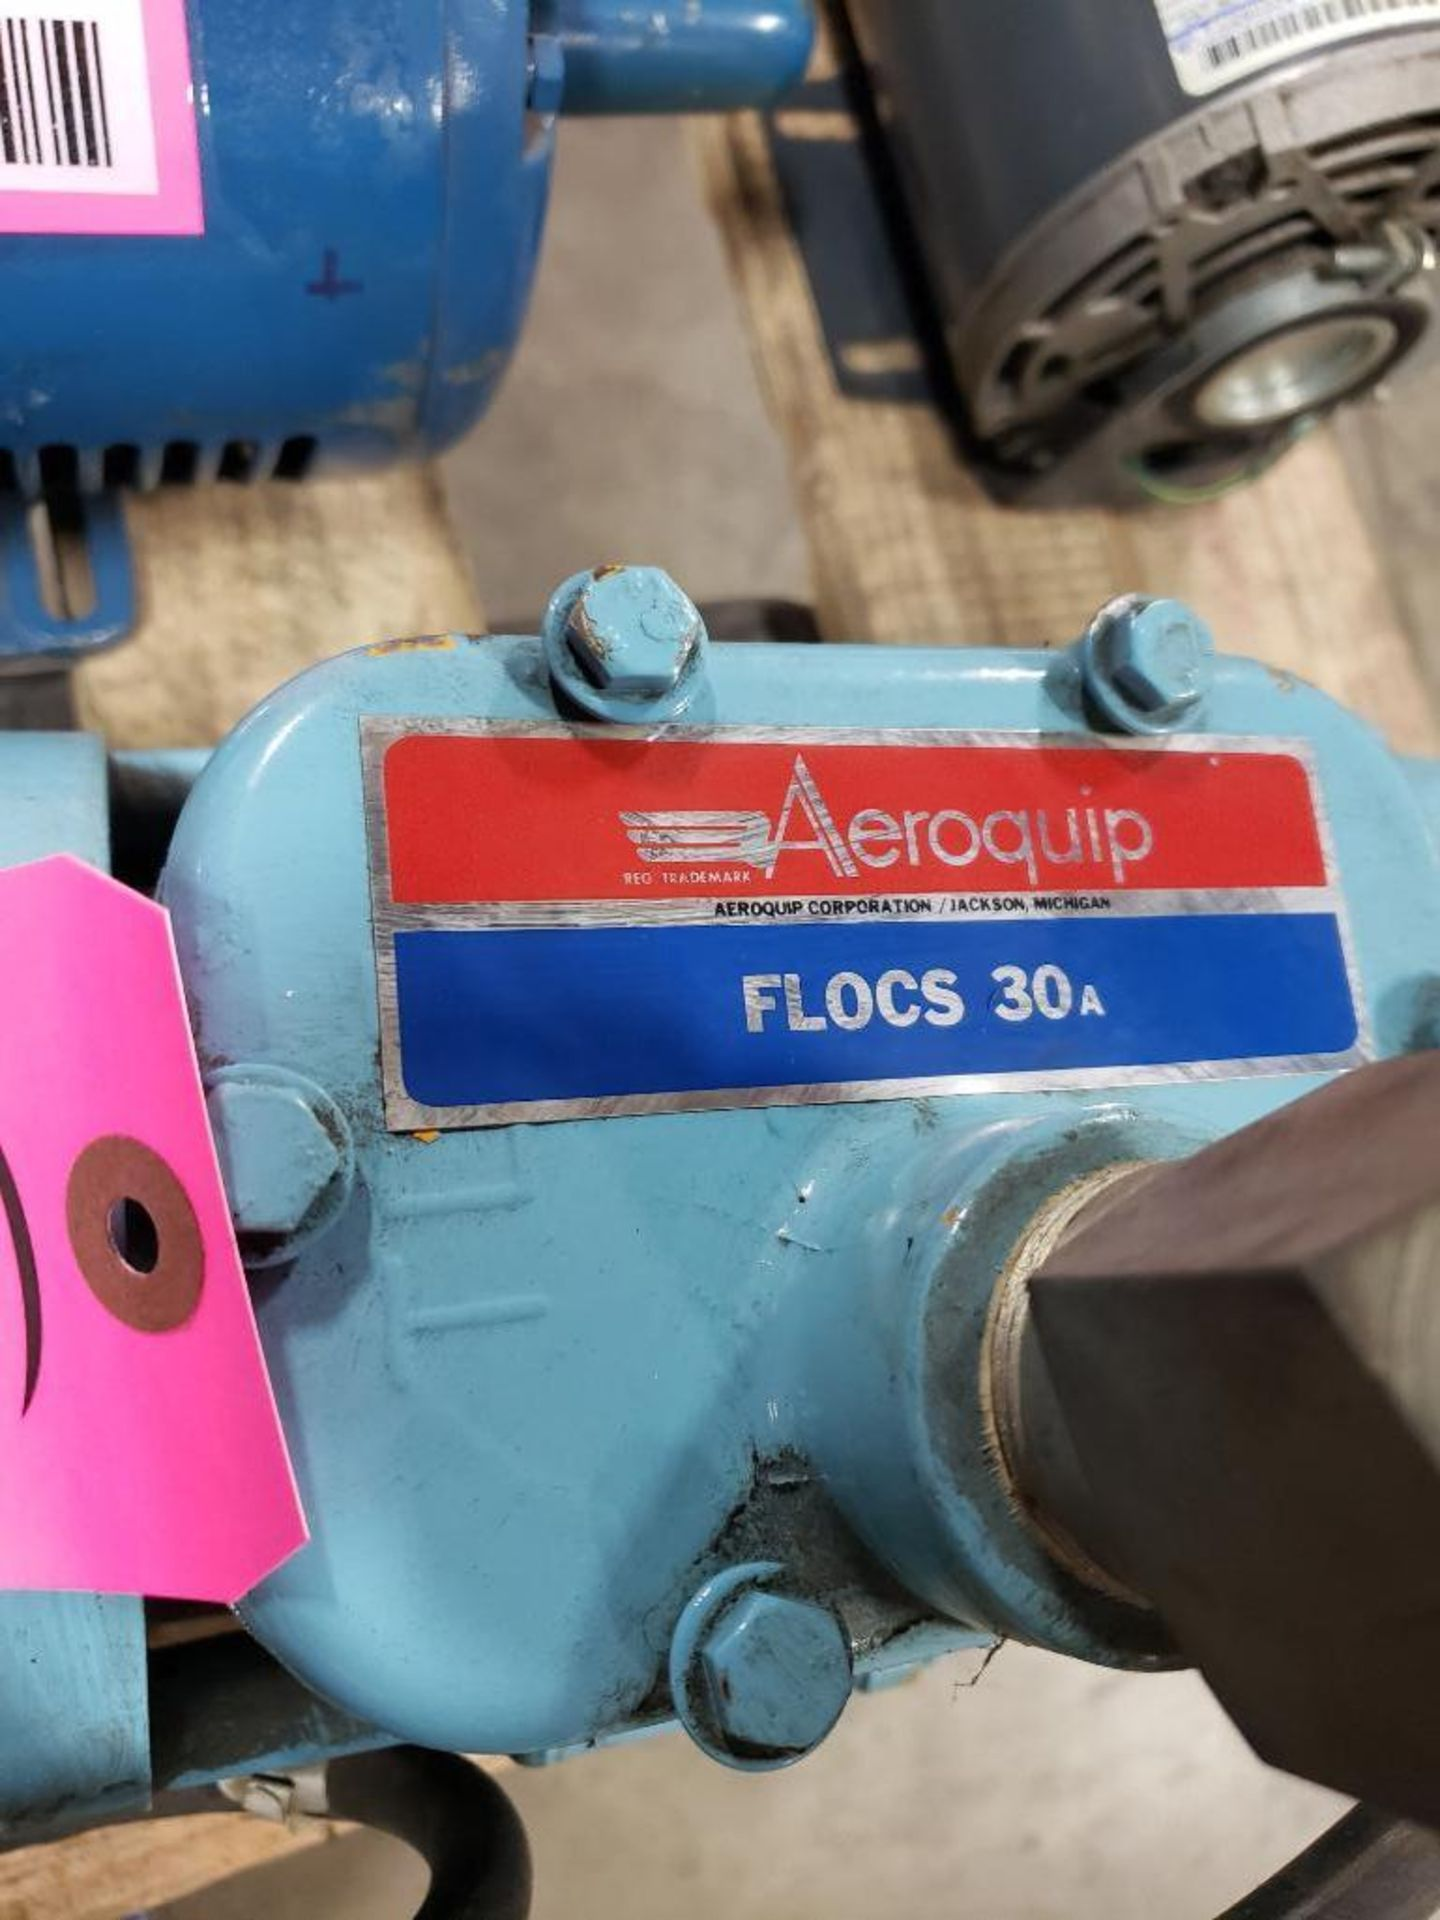 Lot 28 - Aeroquip pump model FF9315-01. Appears to be new with storage wear.